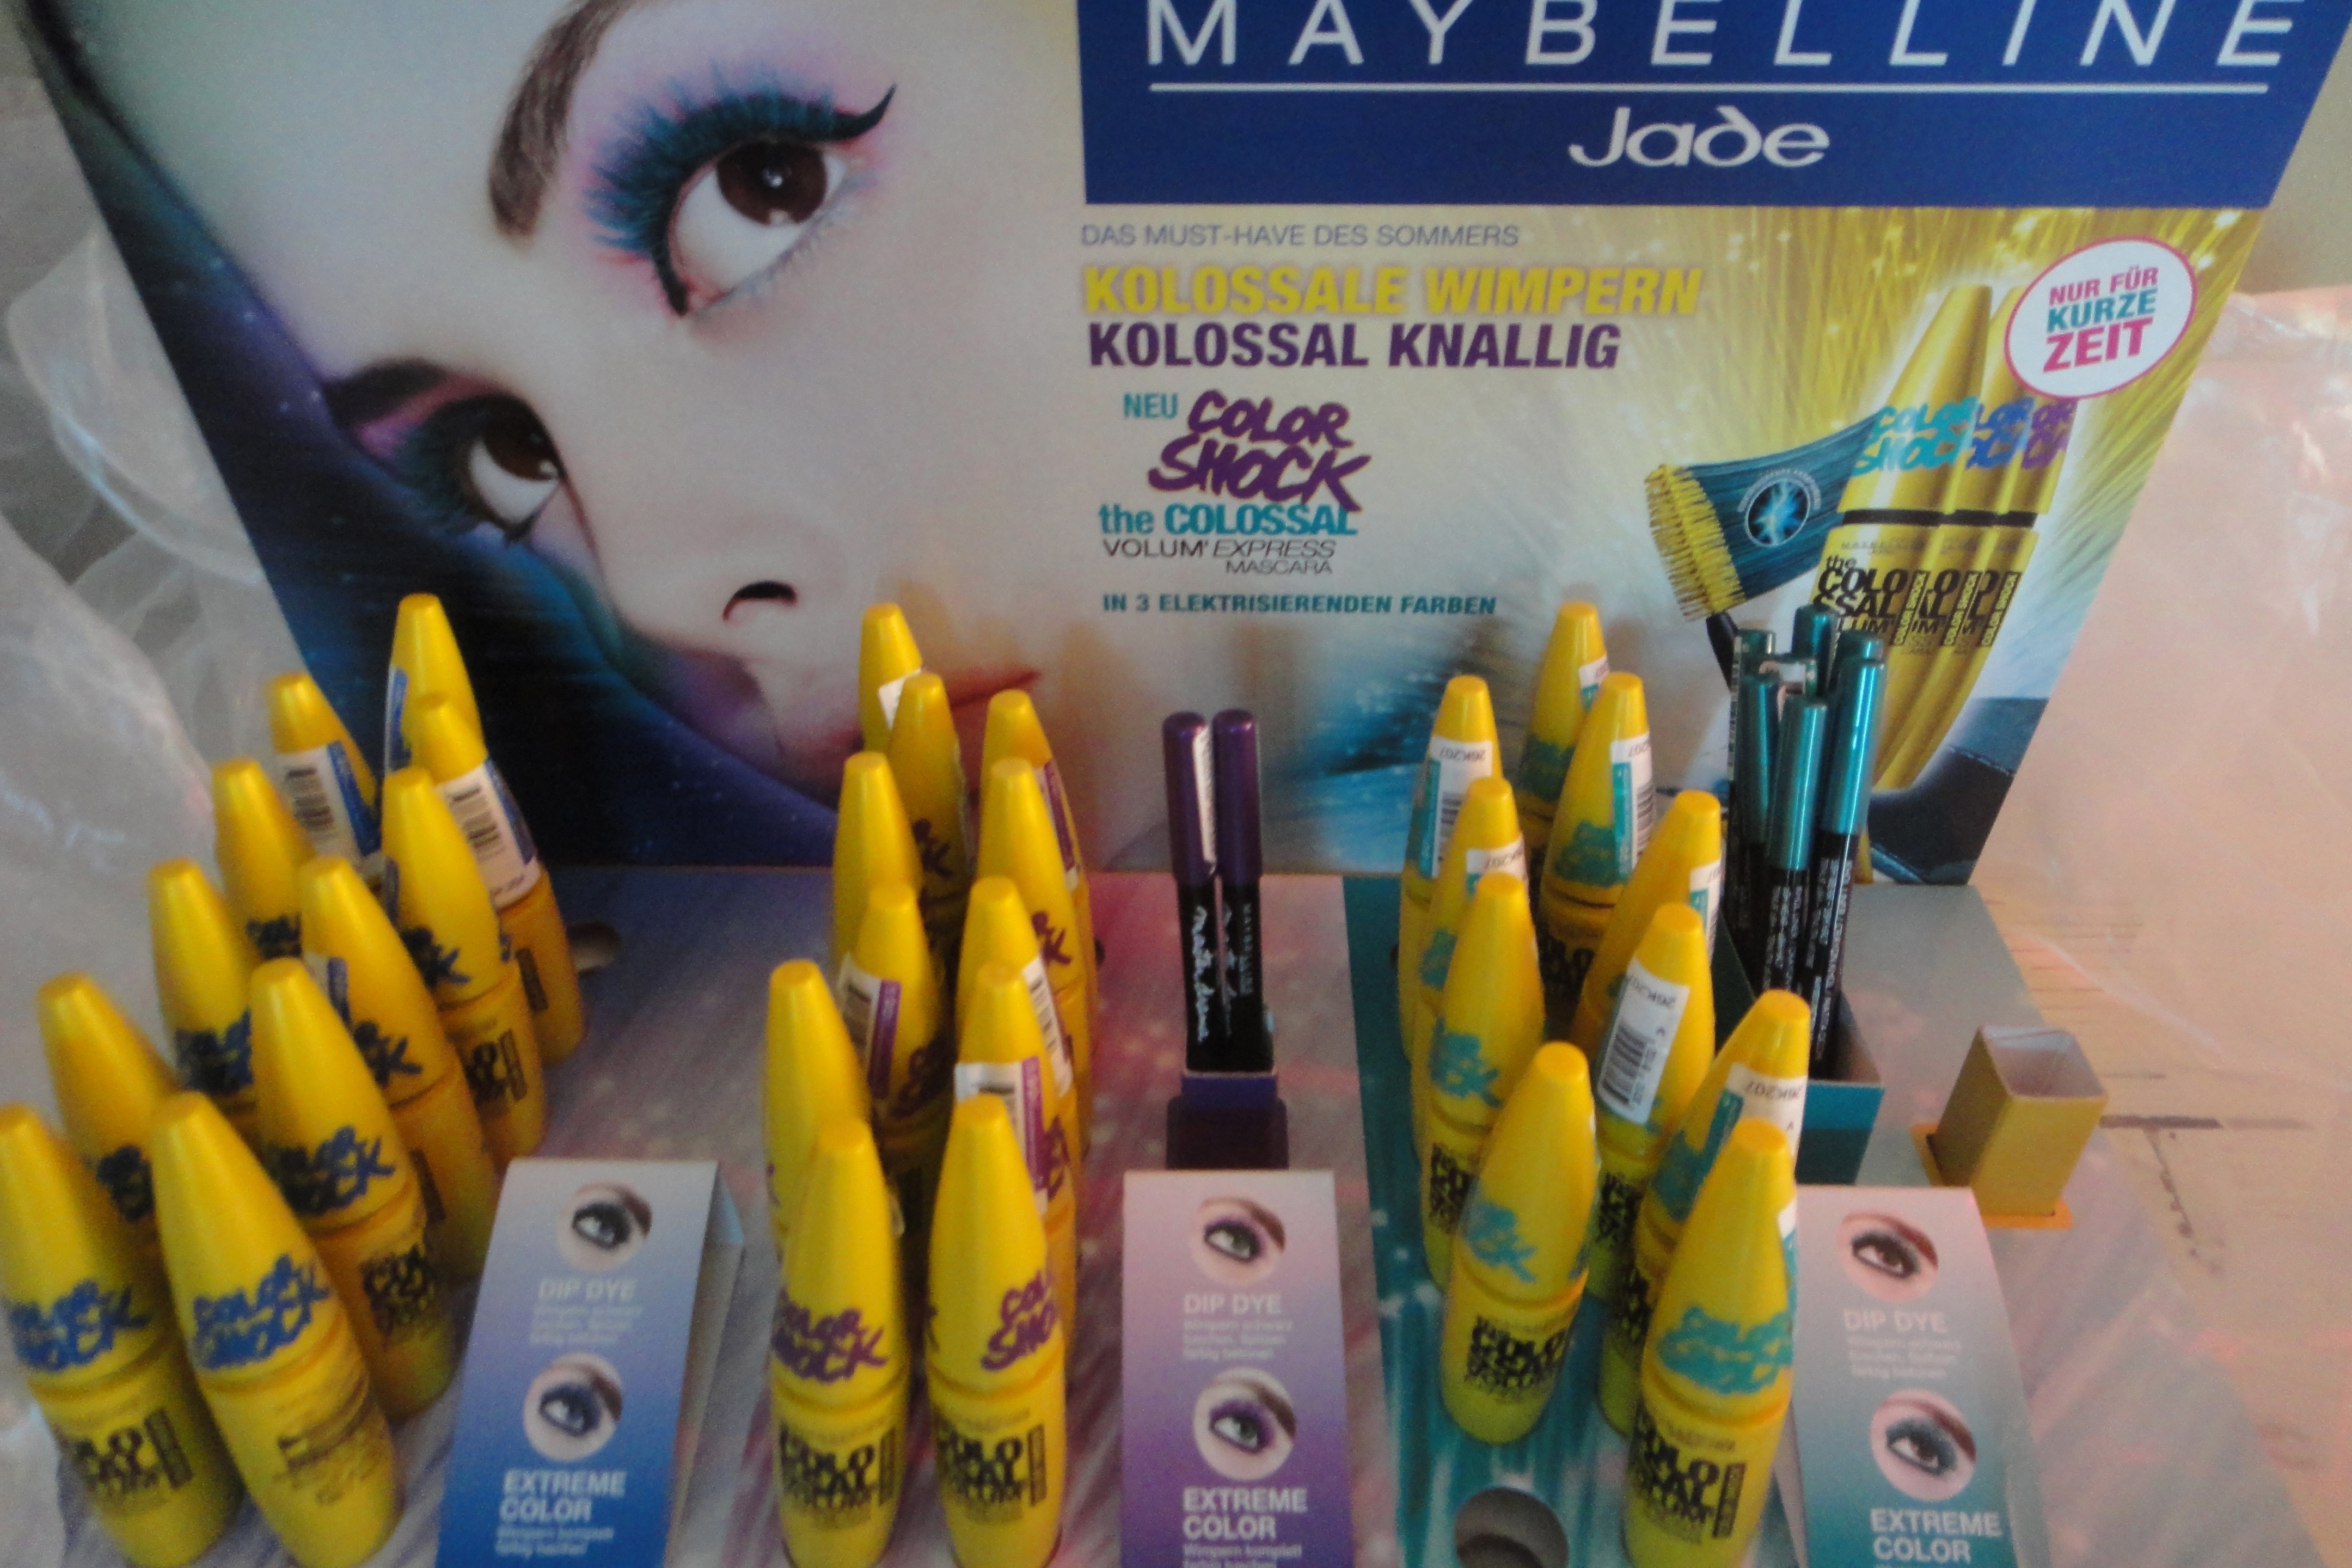 Maybelline Jade Volum'Express The Colossal Color Shock Mascaras